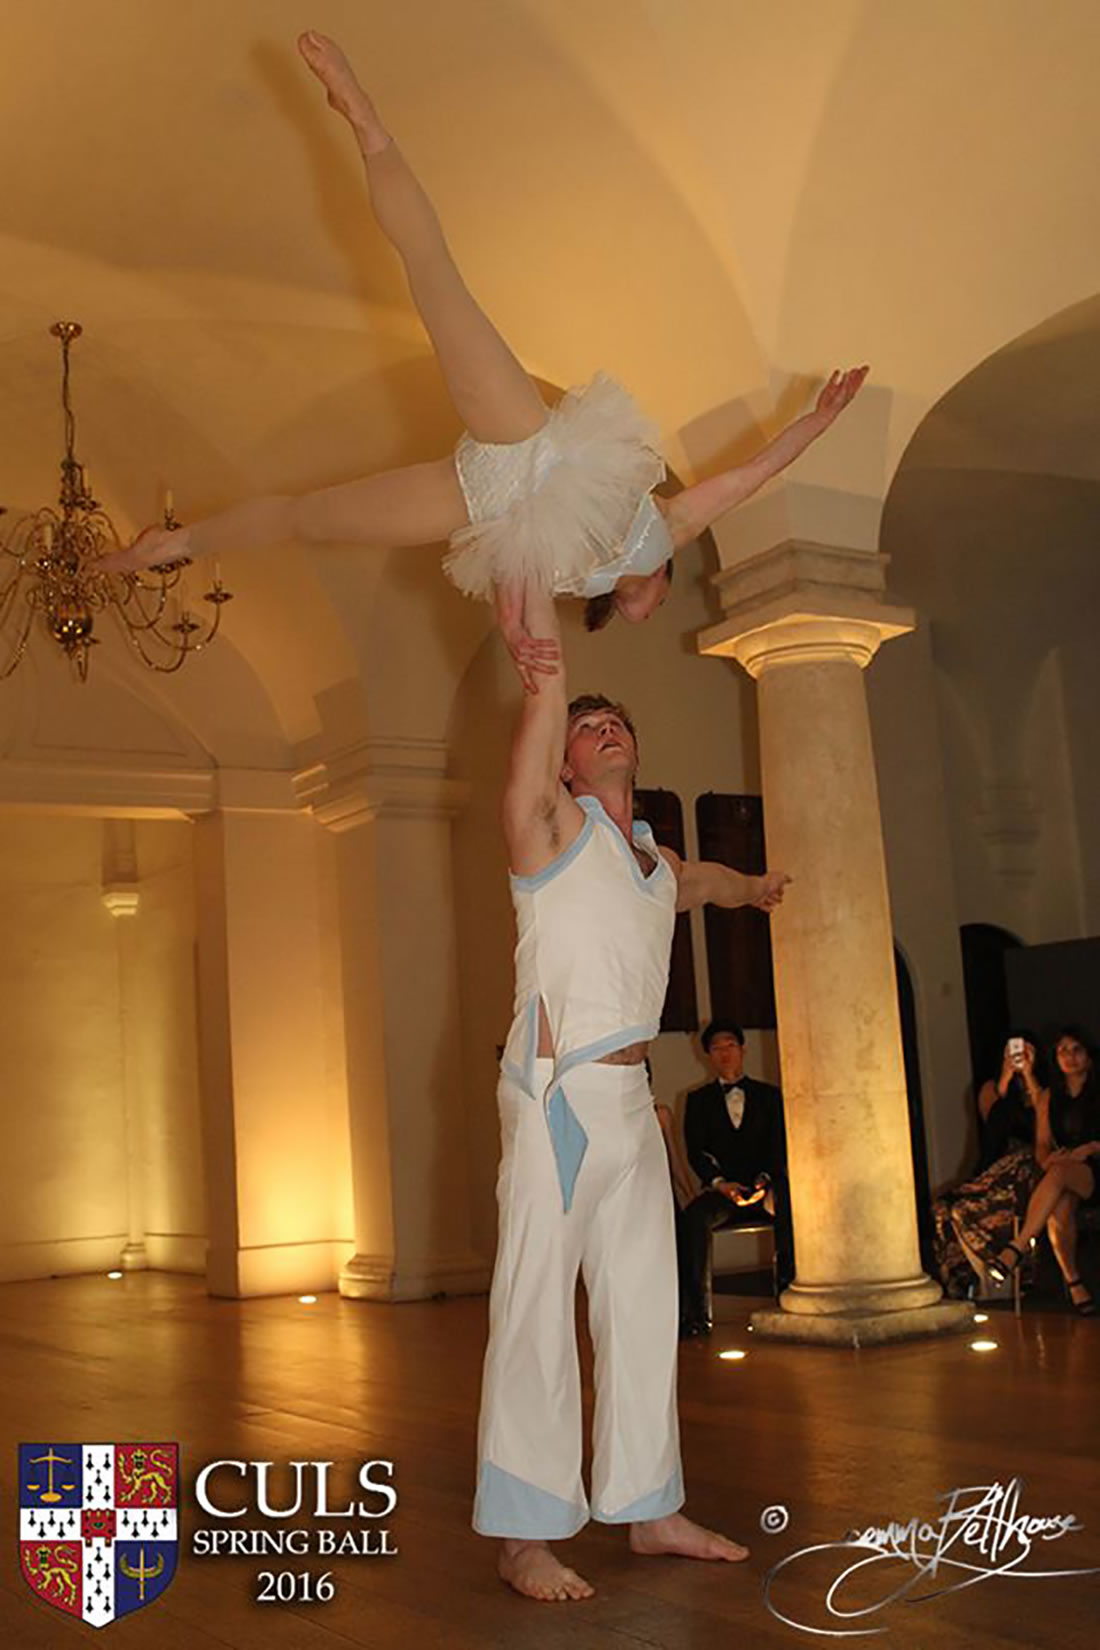 Groundbased Shows - Acrobats Gallery - Acrobatic duet at Cambridge Ball